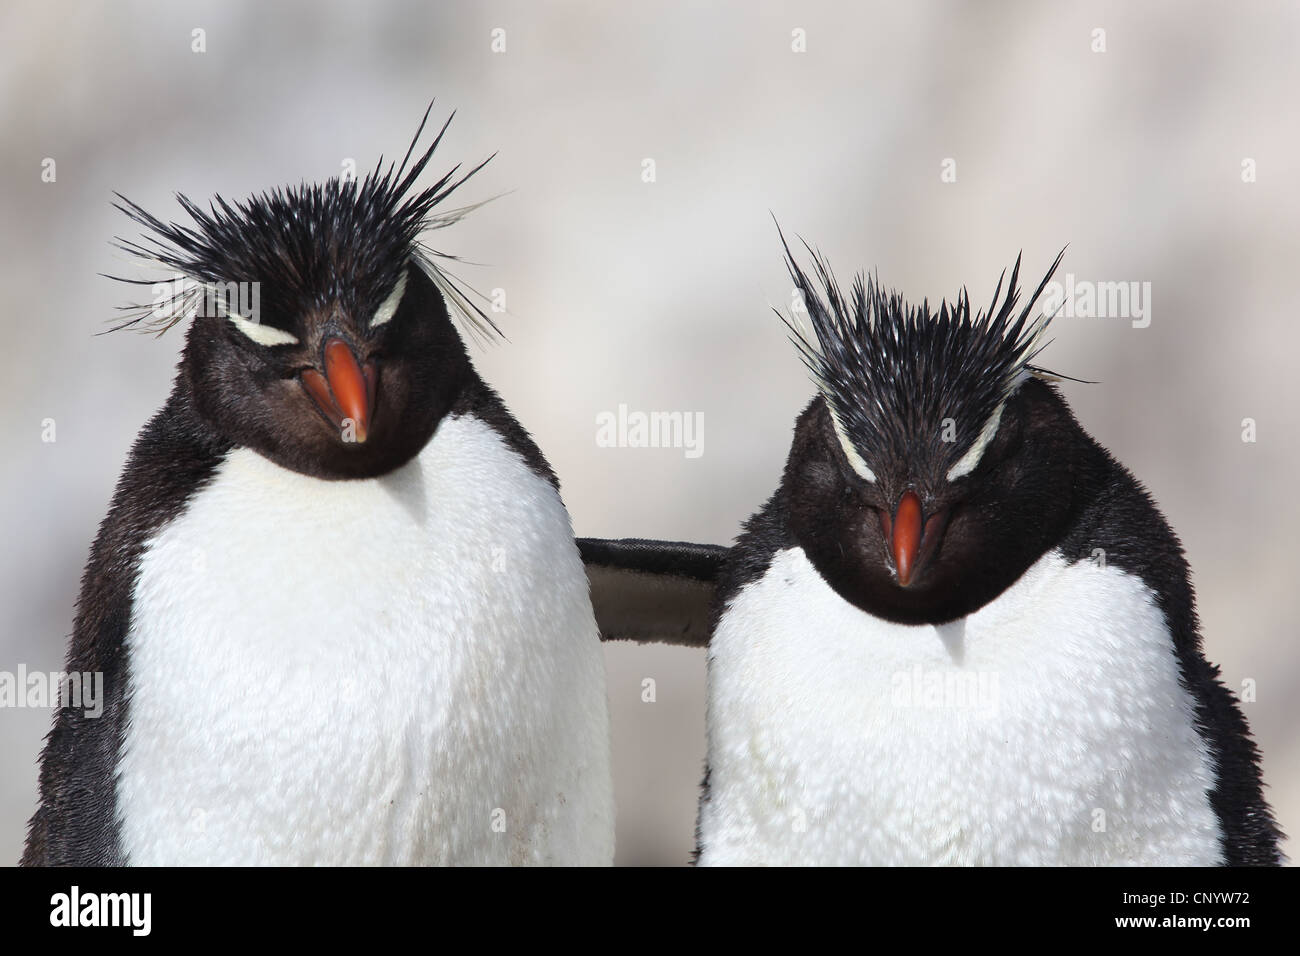 Rockhopper Penguin (Eudyptes chrysocome), embracing, Argentina, Penguin Island - Stock Image